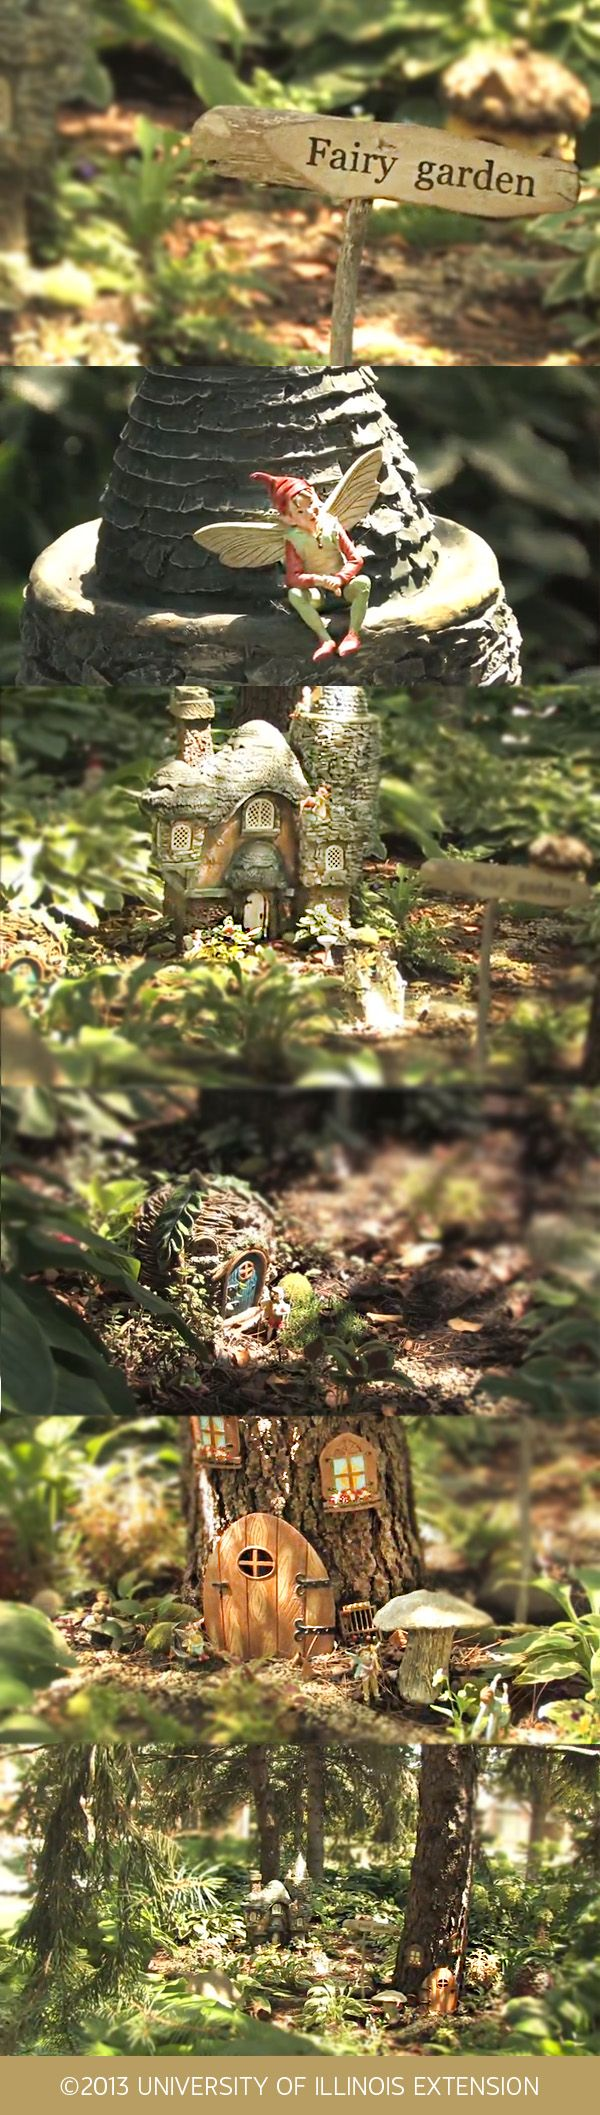 Fairy gardens are a fun project for any age. Consider building your ...